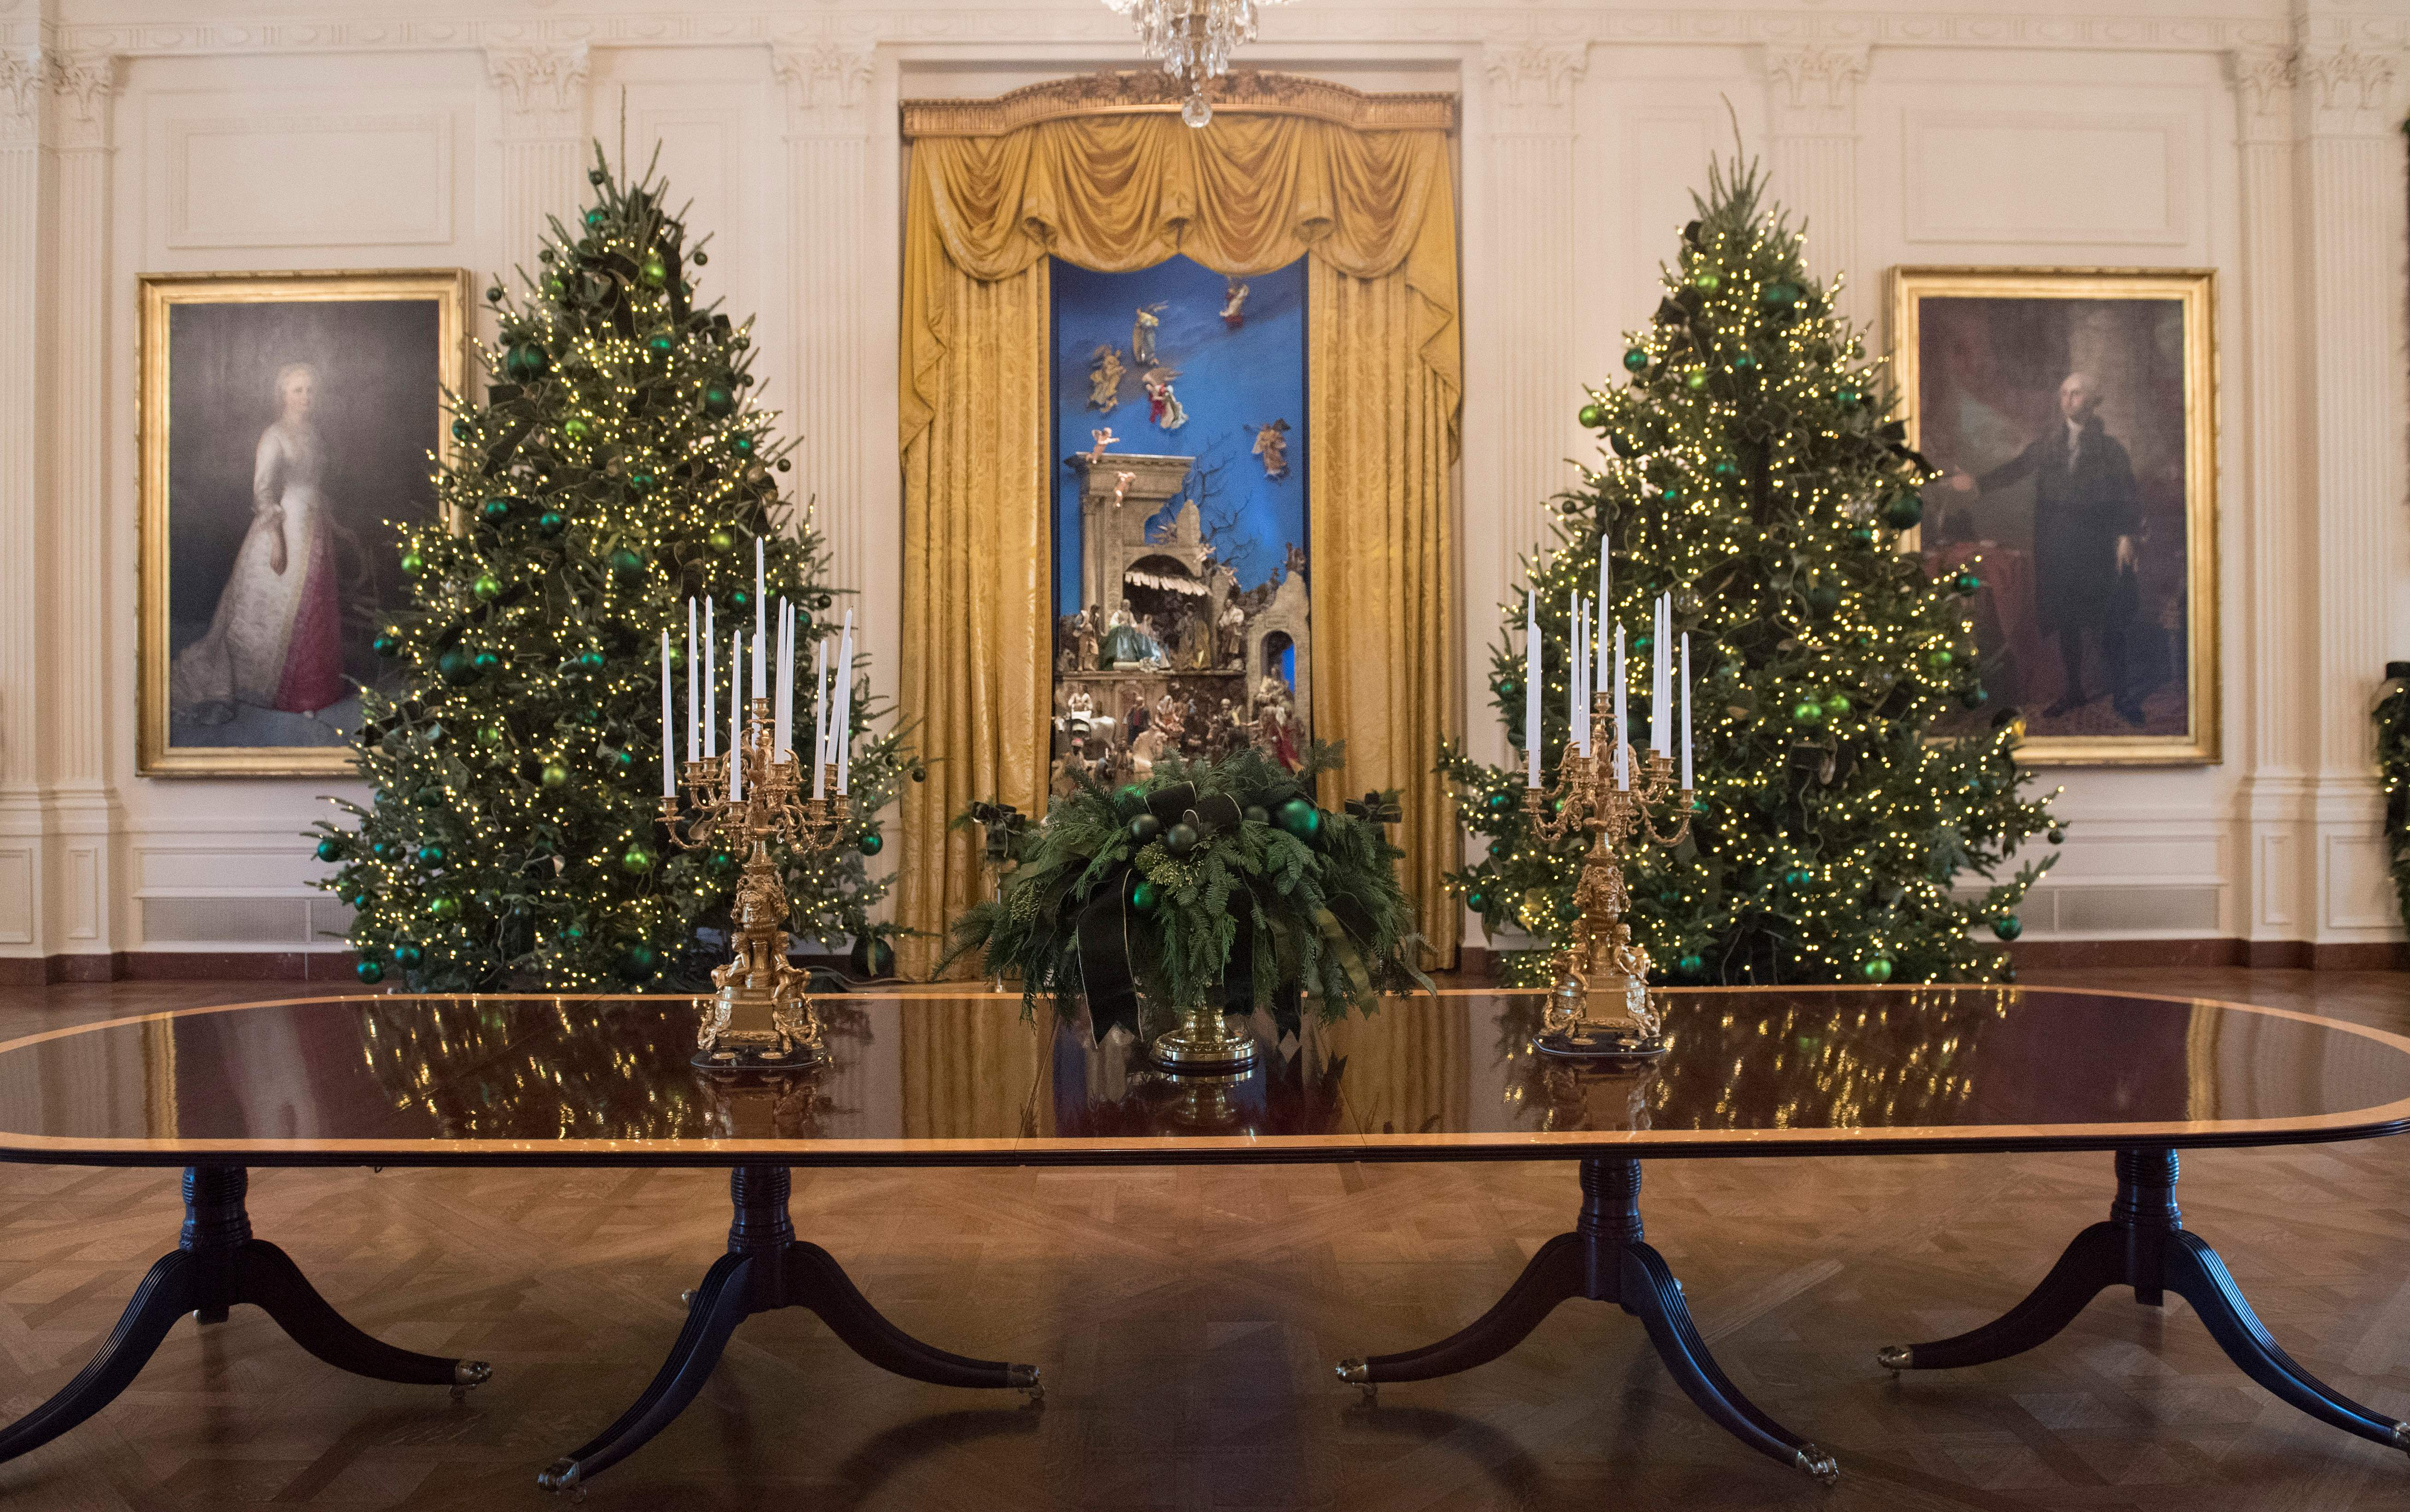 Christmas trees are seen during a preview of holiday decorations in the East Room of the White House in Washington, DC, November 27, 2017.